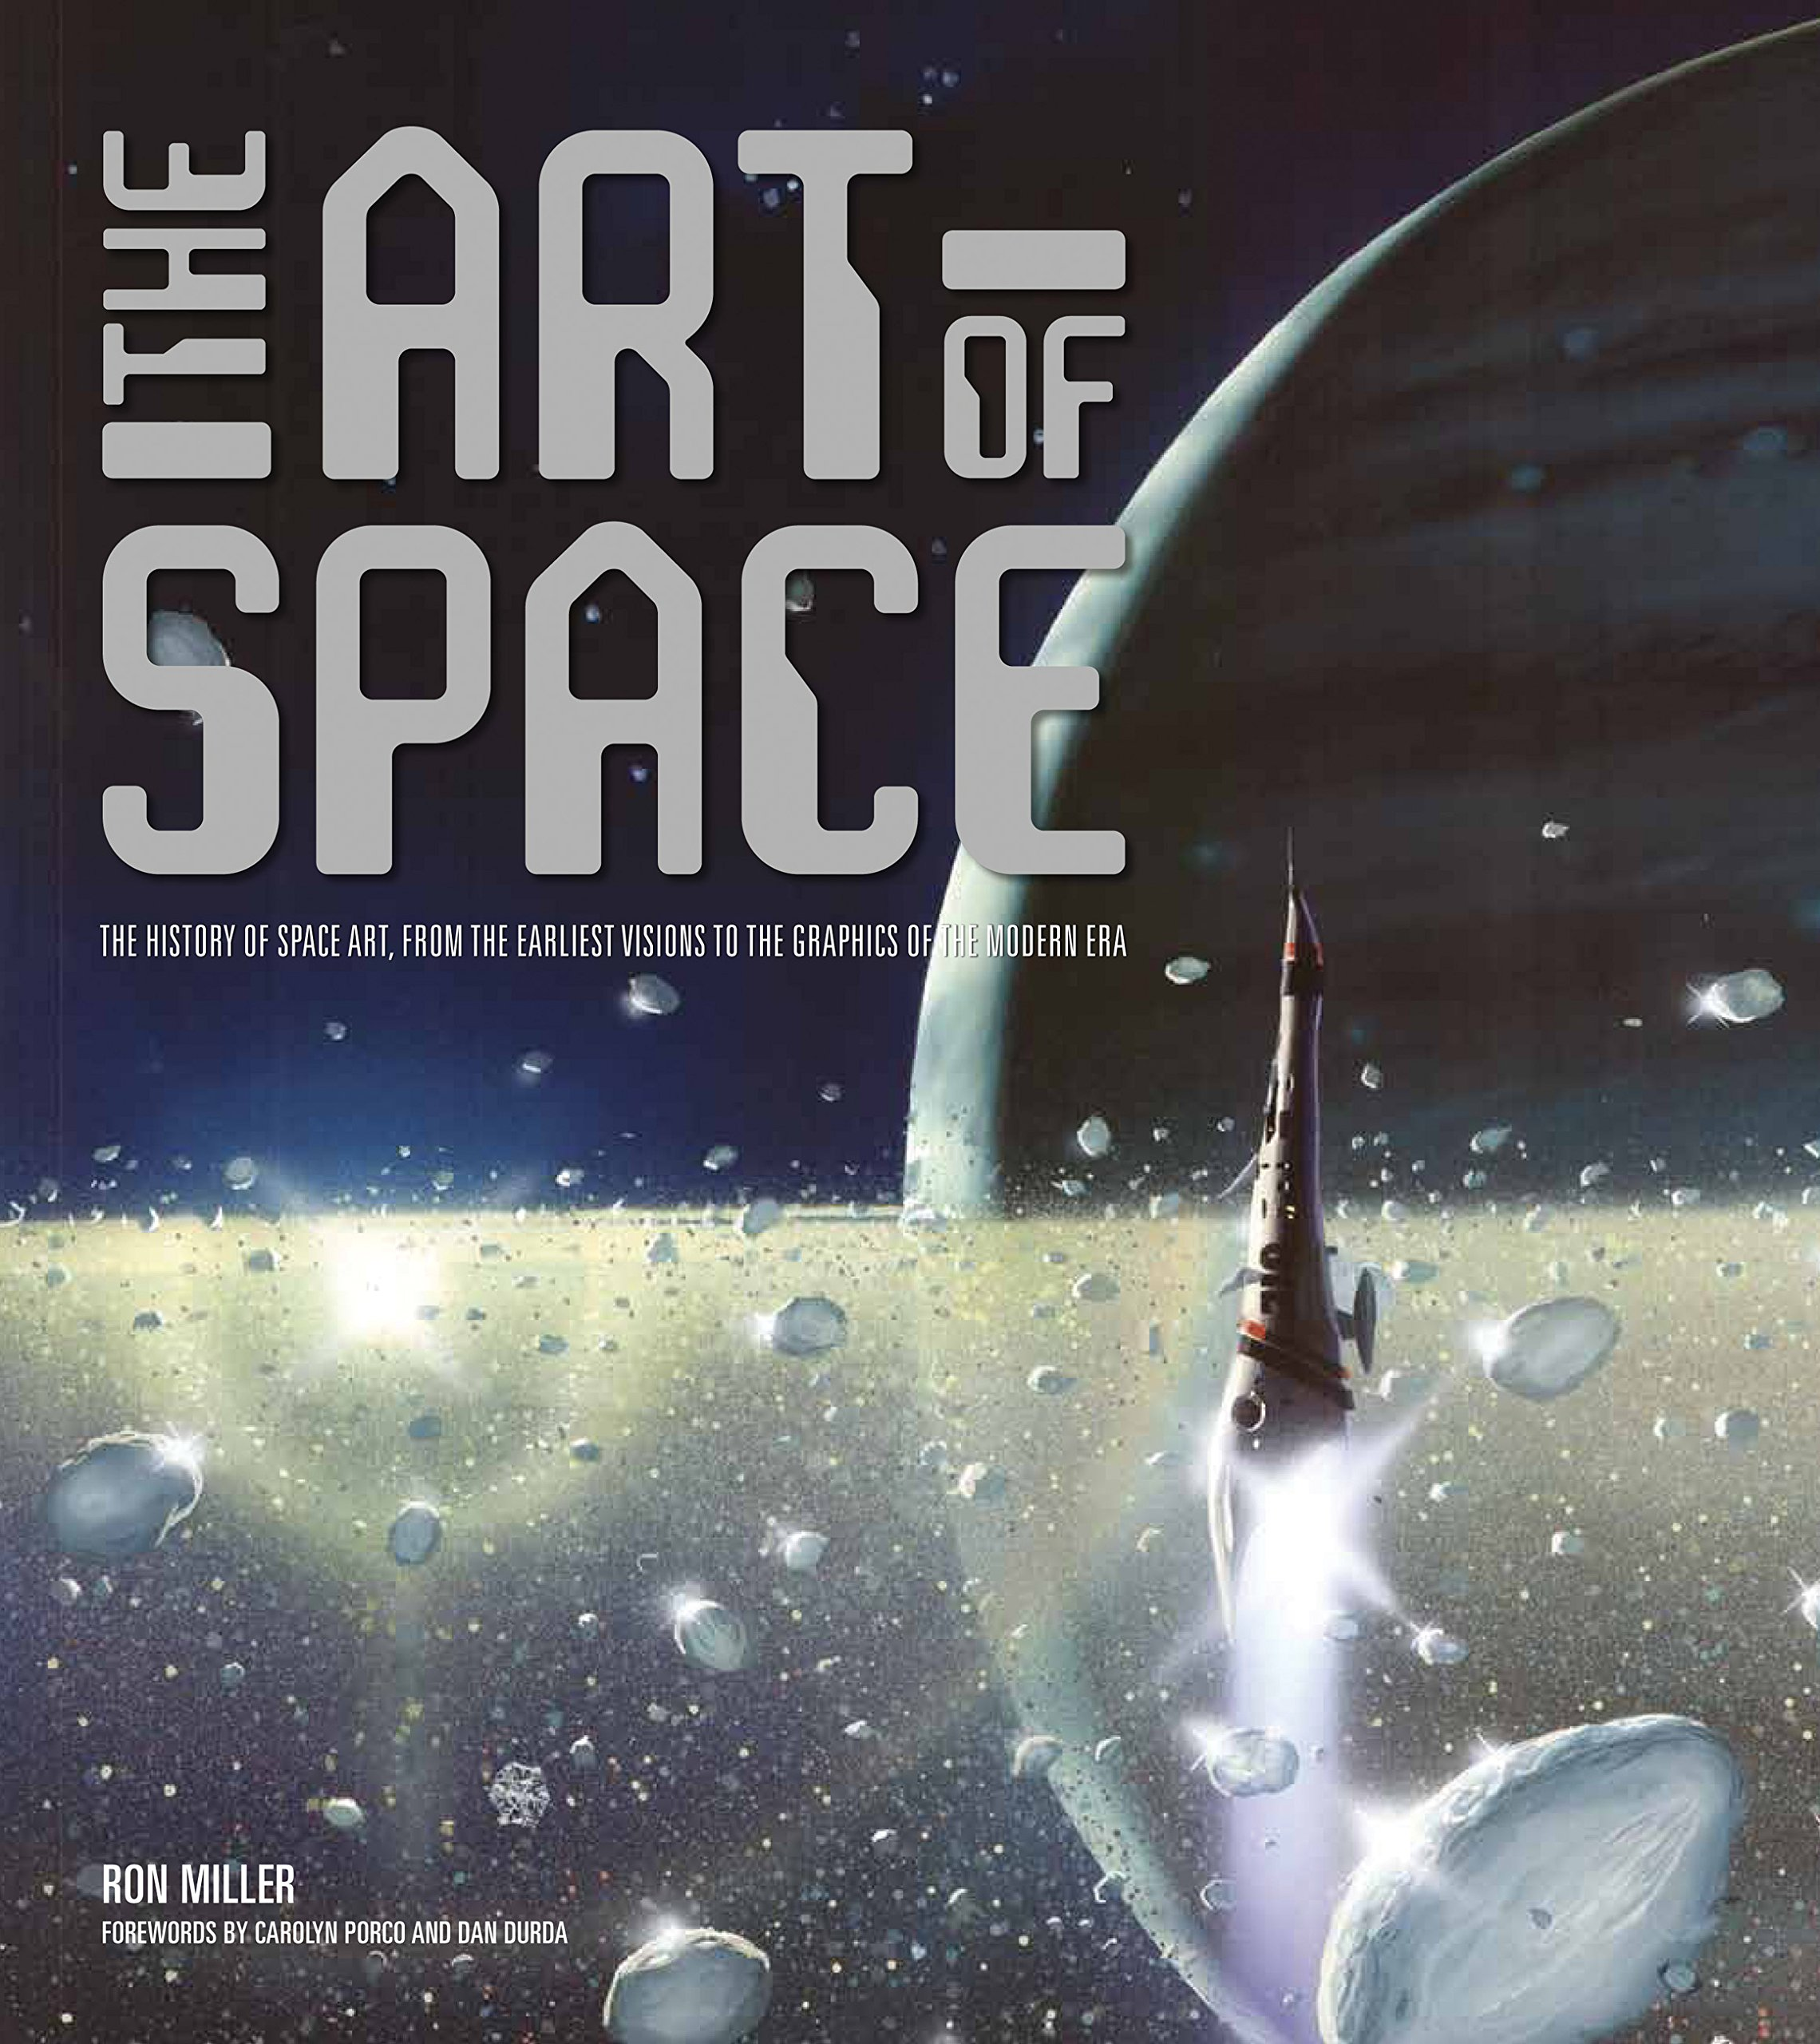 The Art of Space: The History of Space Art, from the Earliest Visions to the Graphics of the Modern